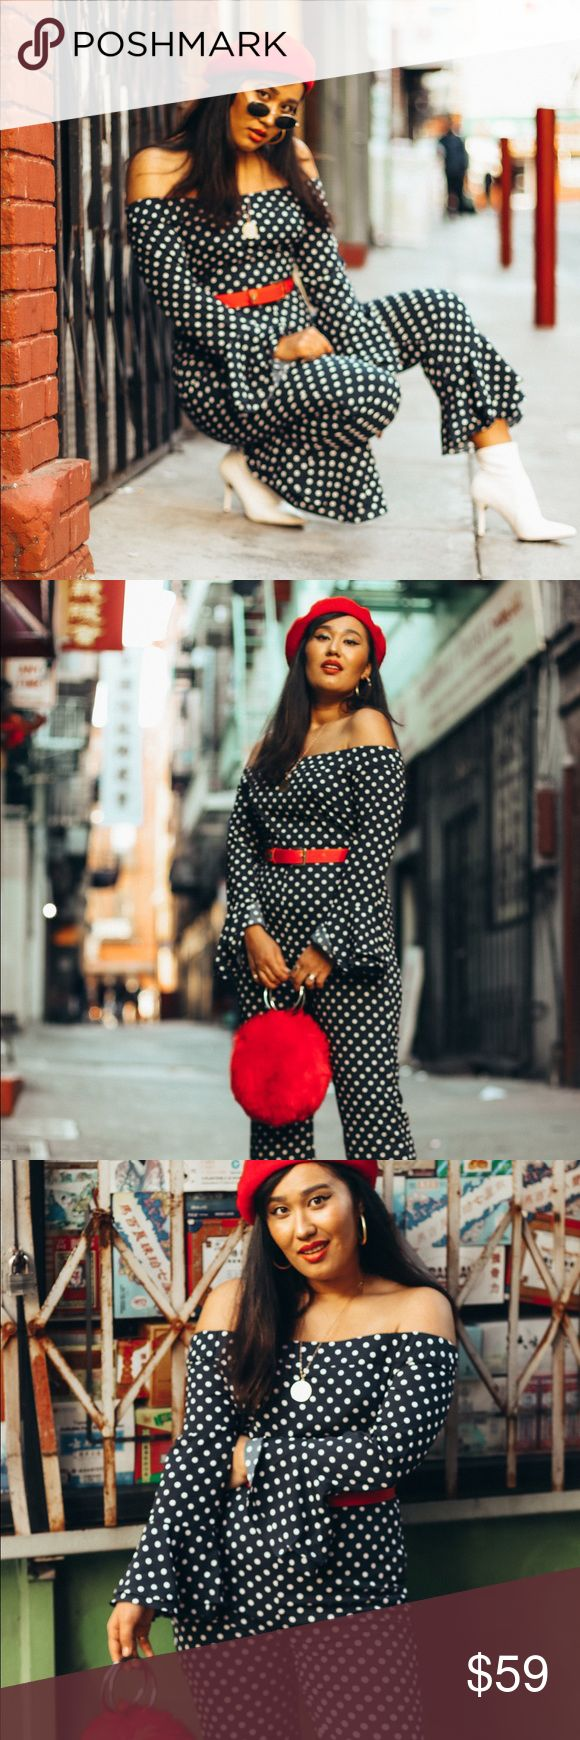 Polka dot jumpsuit Urban outfitters kimchi blue polka dot jumpsuit. Size med or 6. So flattering for girls with curves! Very Parisian! Only worn twice for this shoot. *all photos are my own* Urban Outfitters Dresses Midi